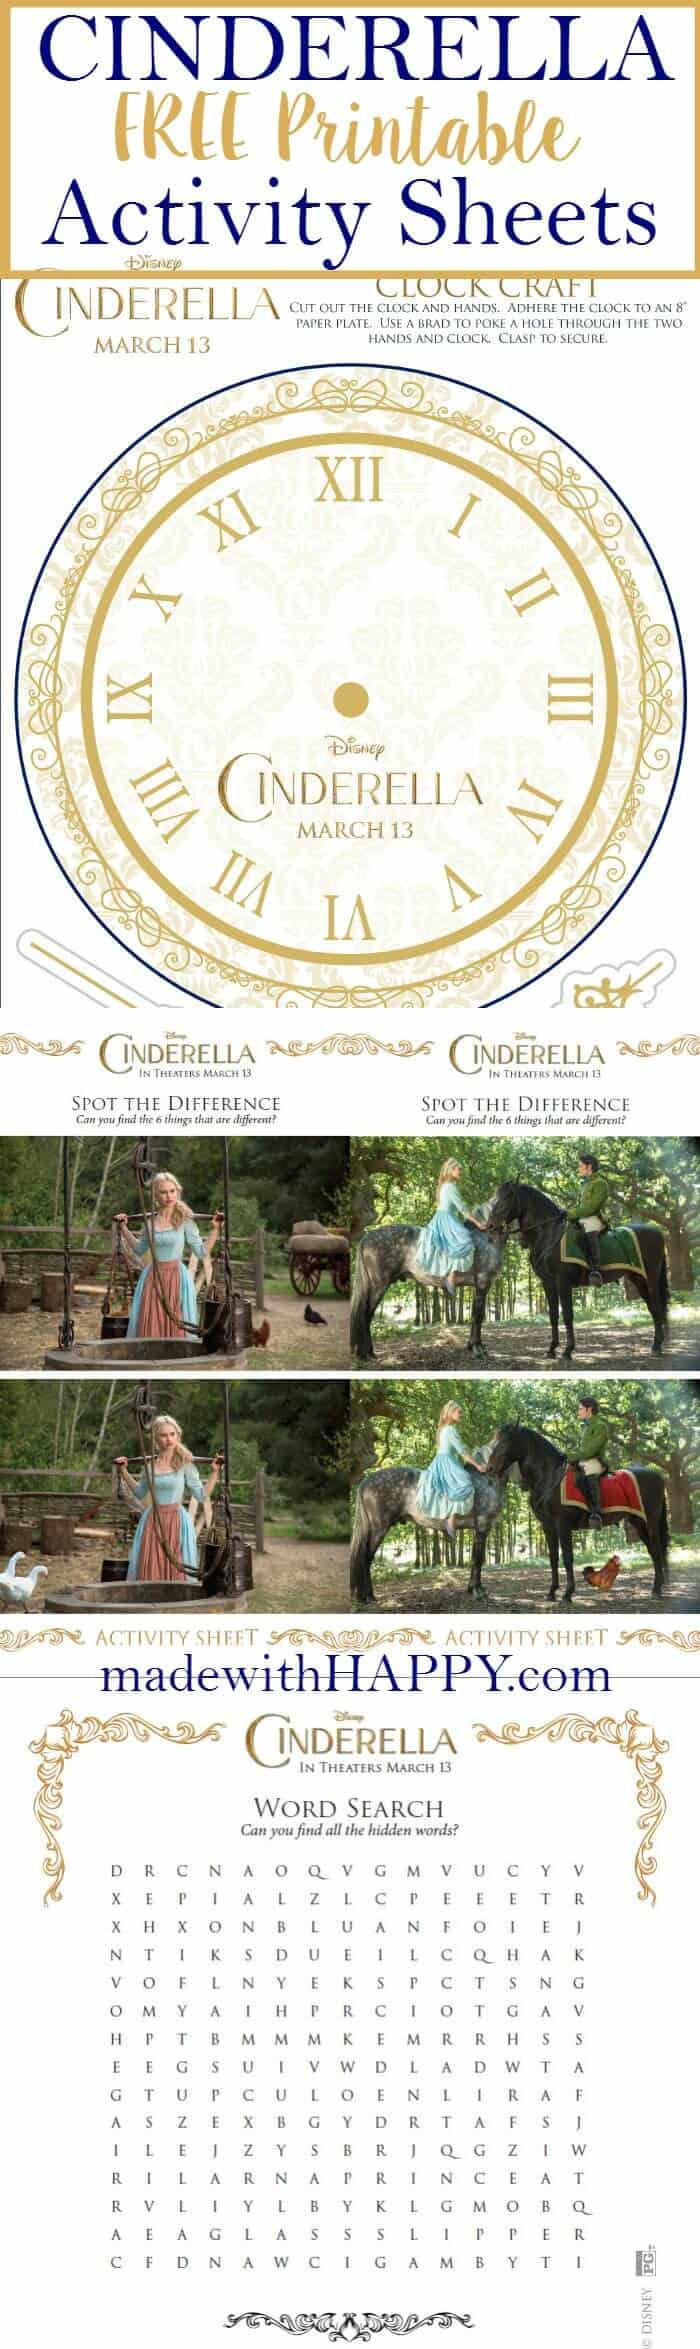 Cinderella-Activity-Sheets-Pin